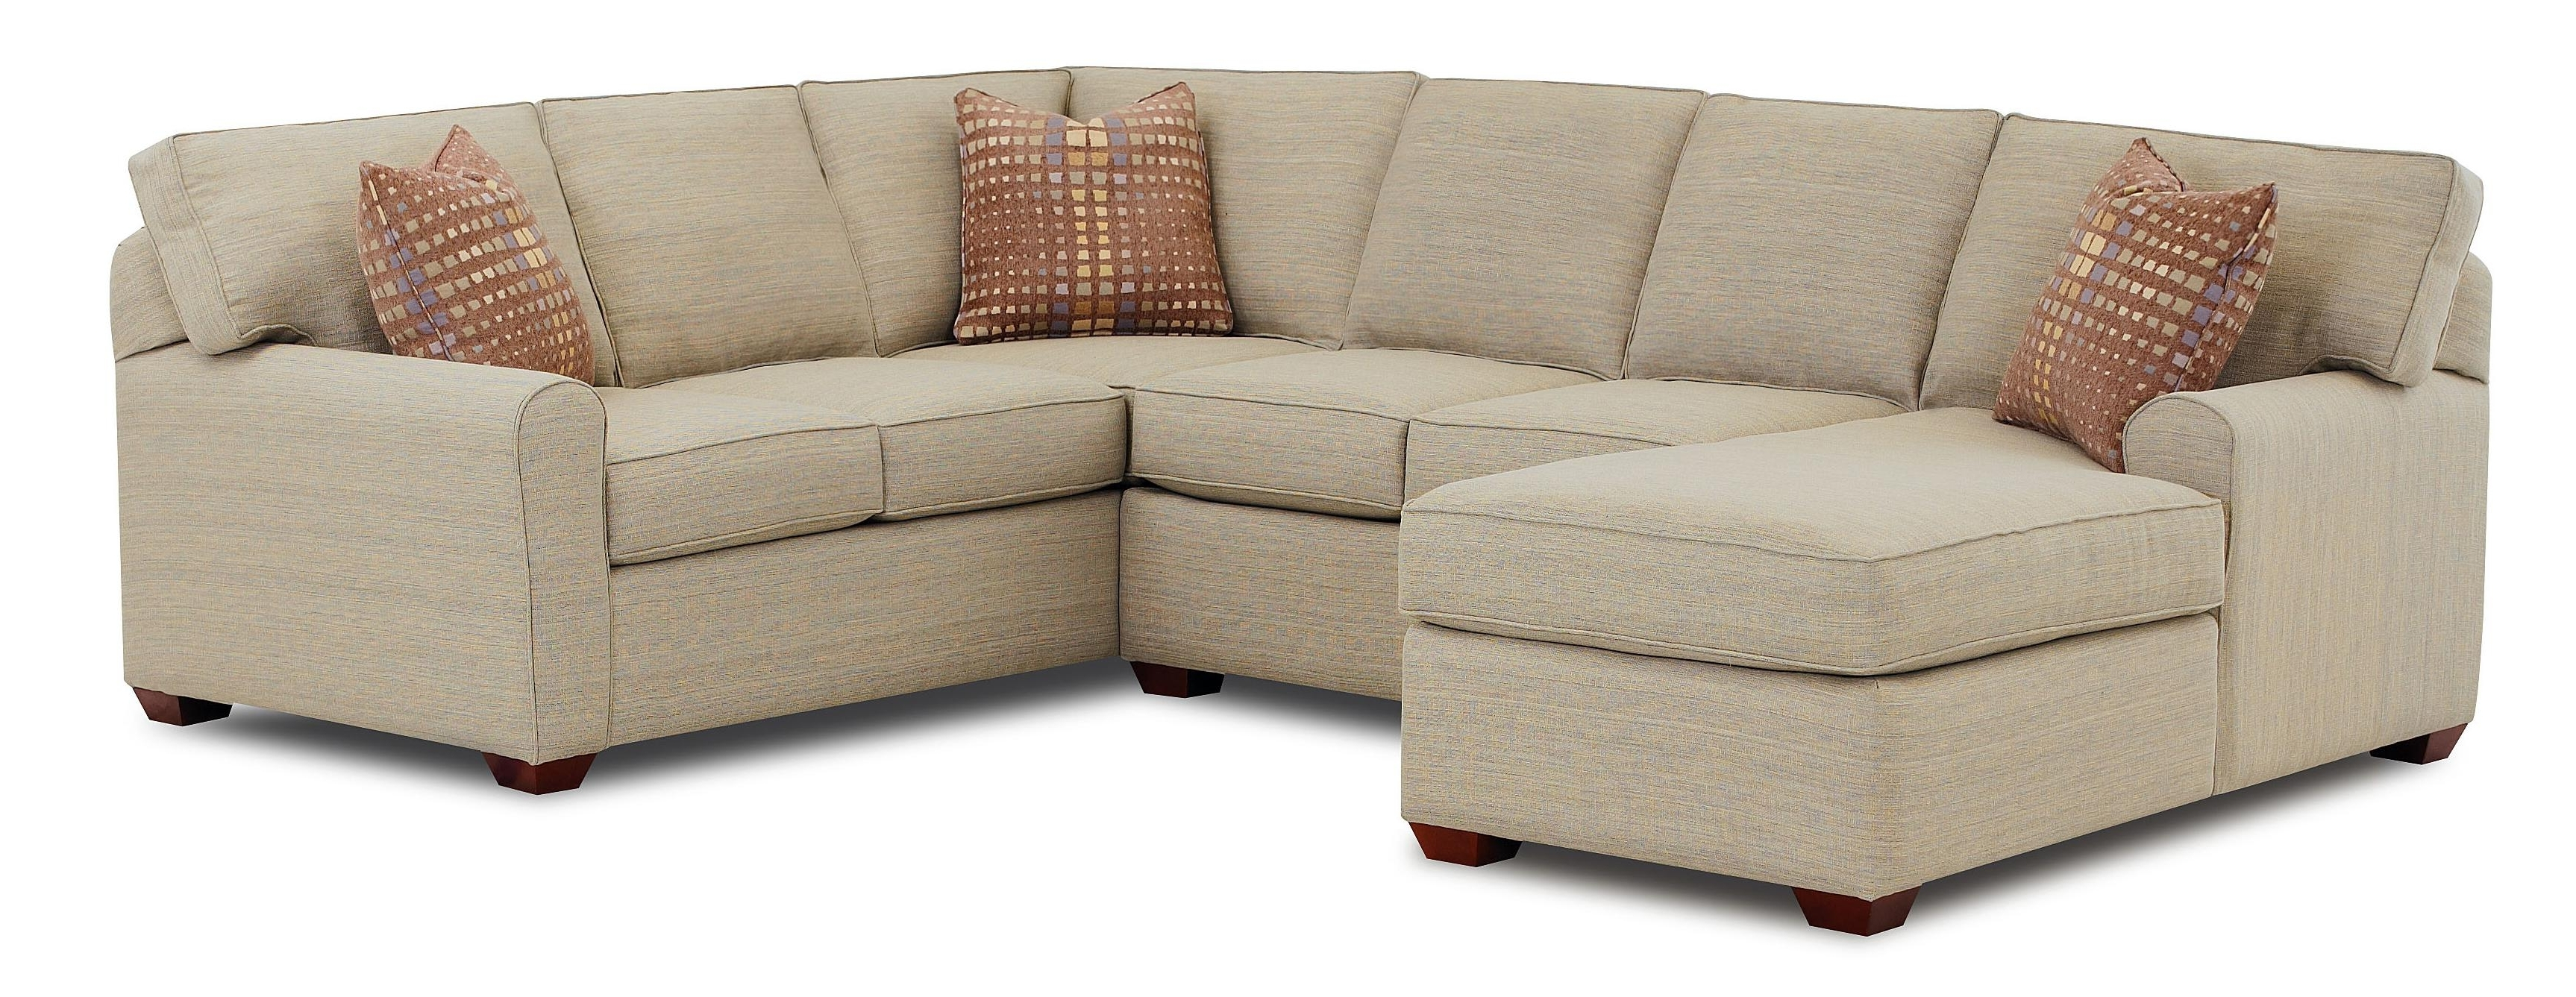 Most Up To Date Sectional Sofa With Left Facing Chaise Loungeklaussner (View 13 of 15)